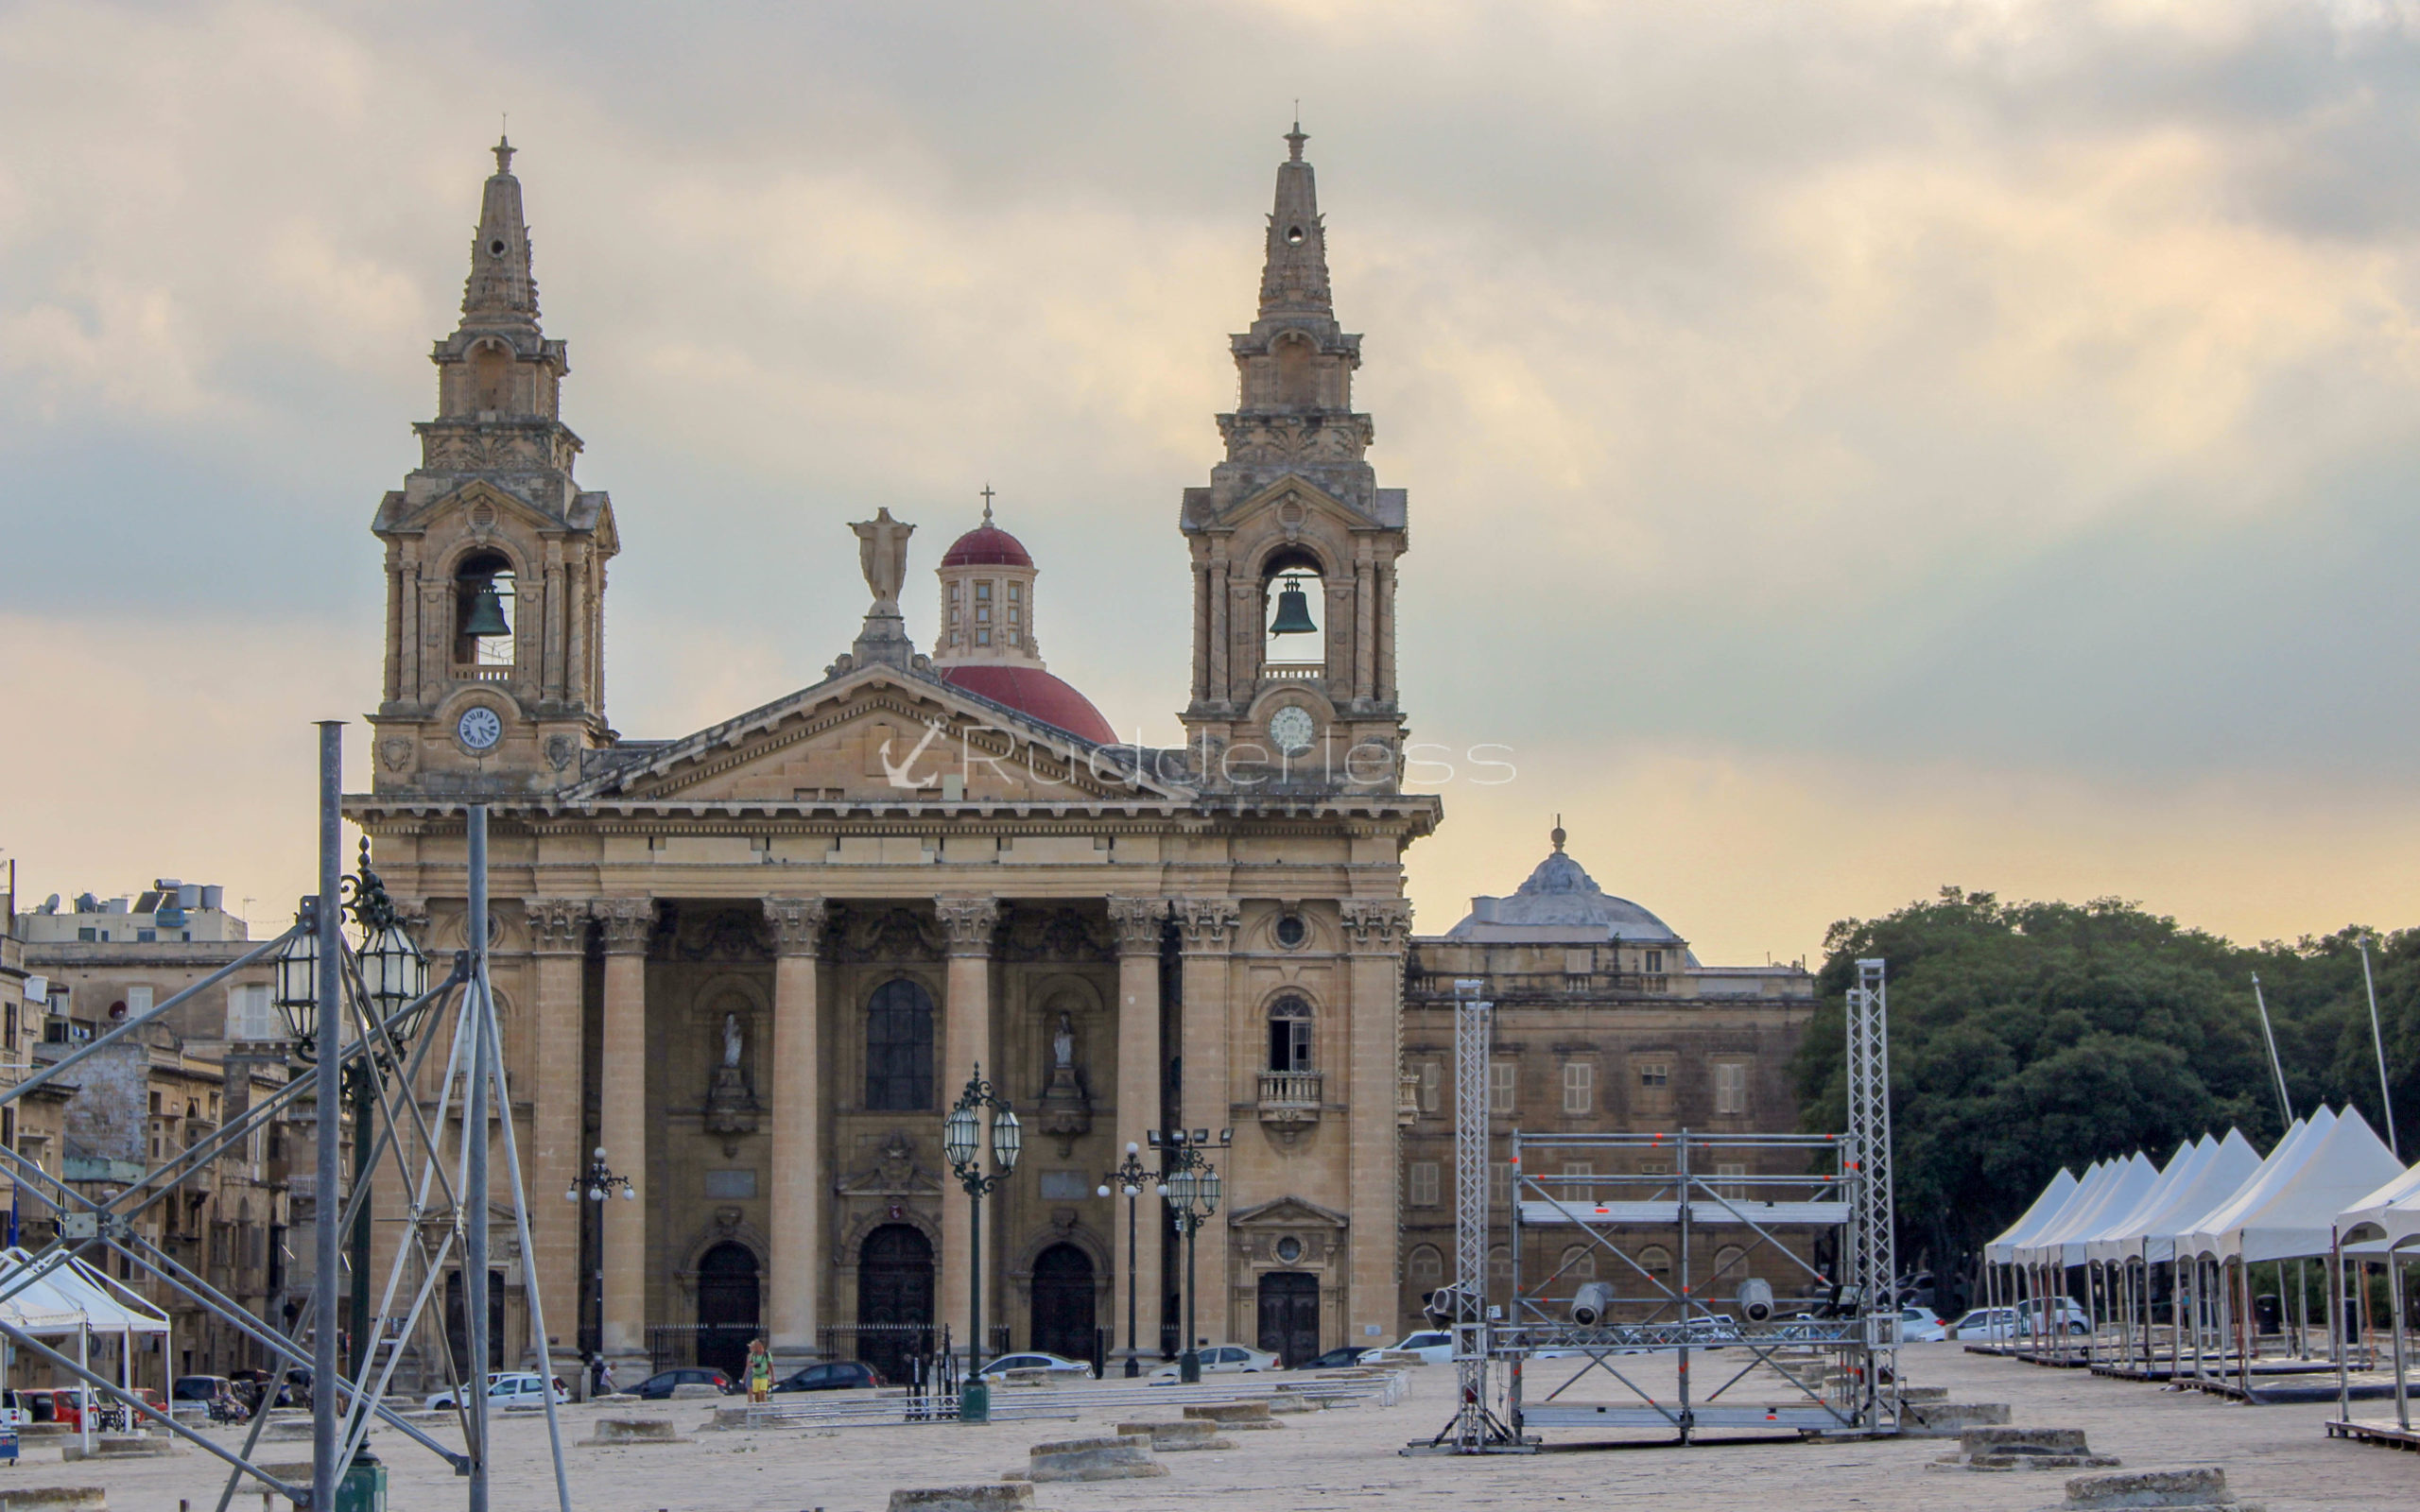 things to see in valletta - St. Publius